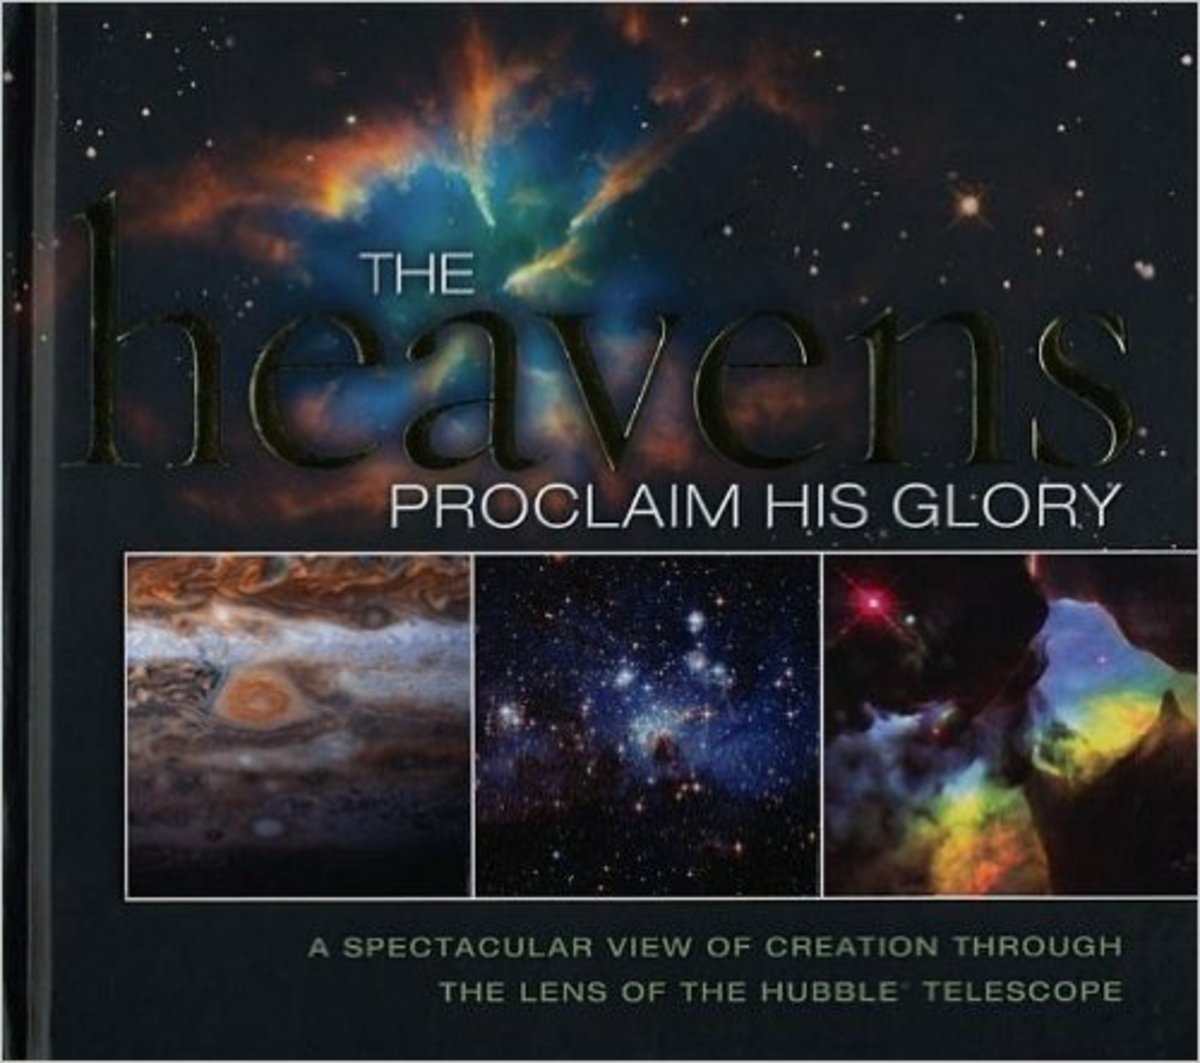 The Heavens Proclaim His Glory: A Spectacular View of Creation Through the Lens of the NASA Hubble Telescope by Thomas Nelson